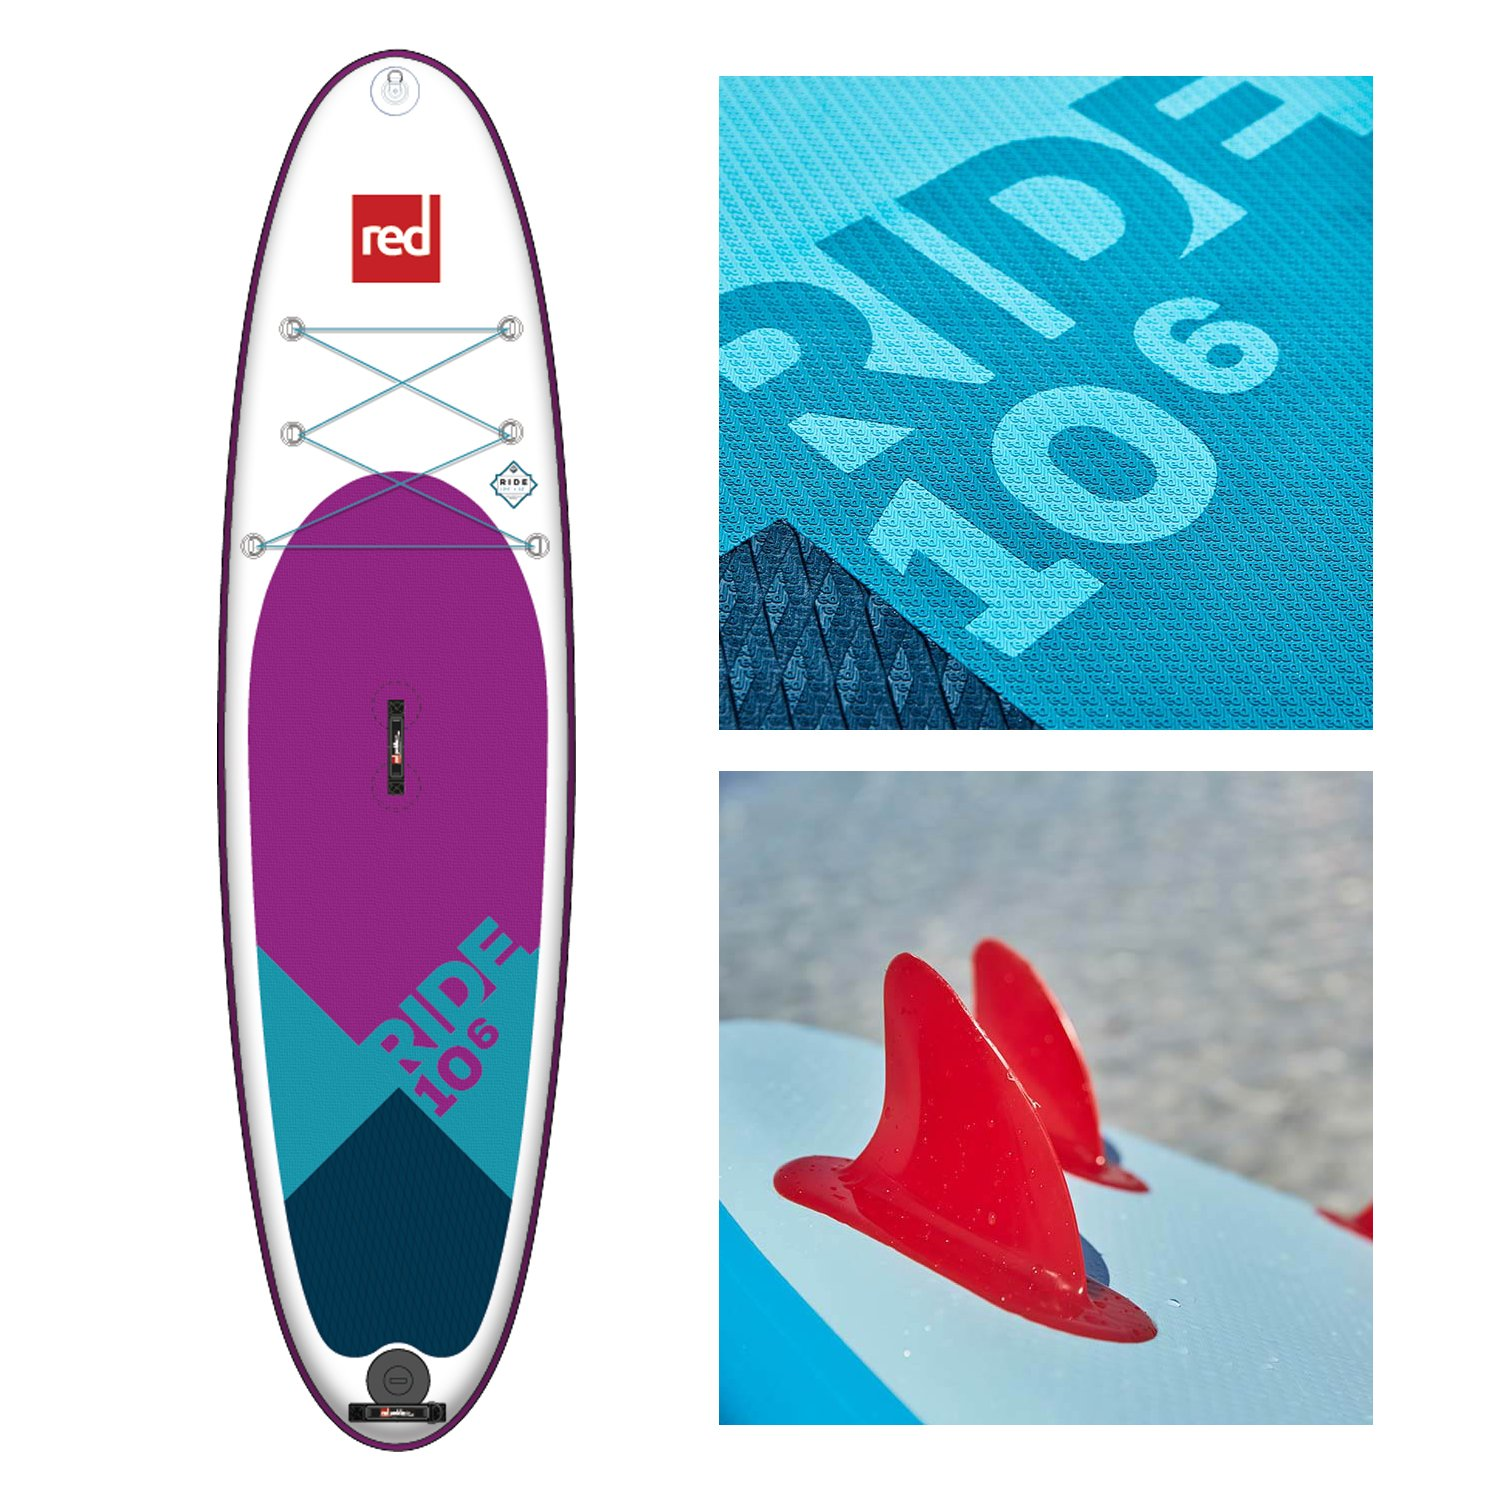 Red Paddle Co 2018 Ride 106 Special Edition Inflatable Stand Up Paddle Board + Bag, Pump, Paddle & Leash: Amazon.es: Deportes y aire libre